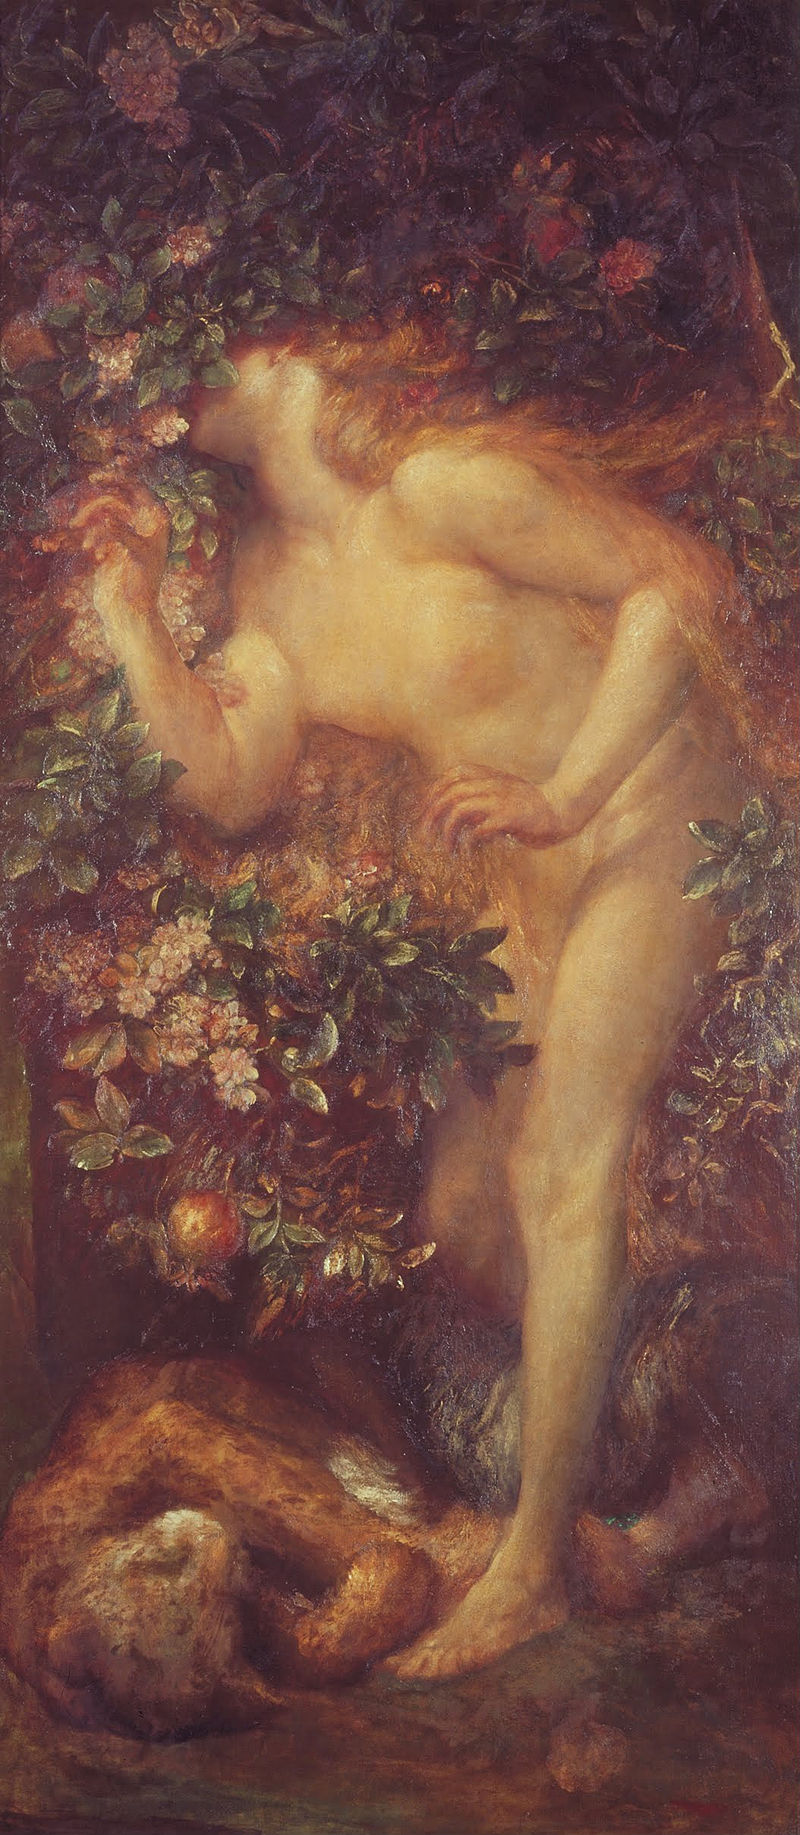 George Frederic Watts - Eve Tempted - Google Art Project.jpg